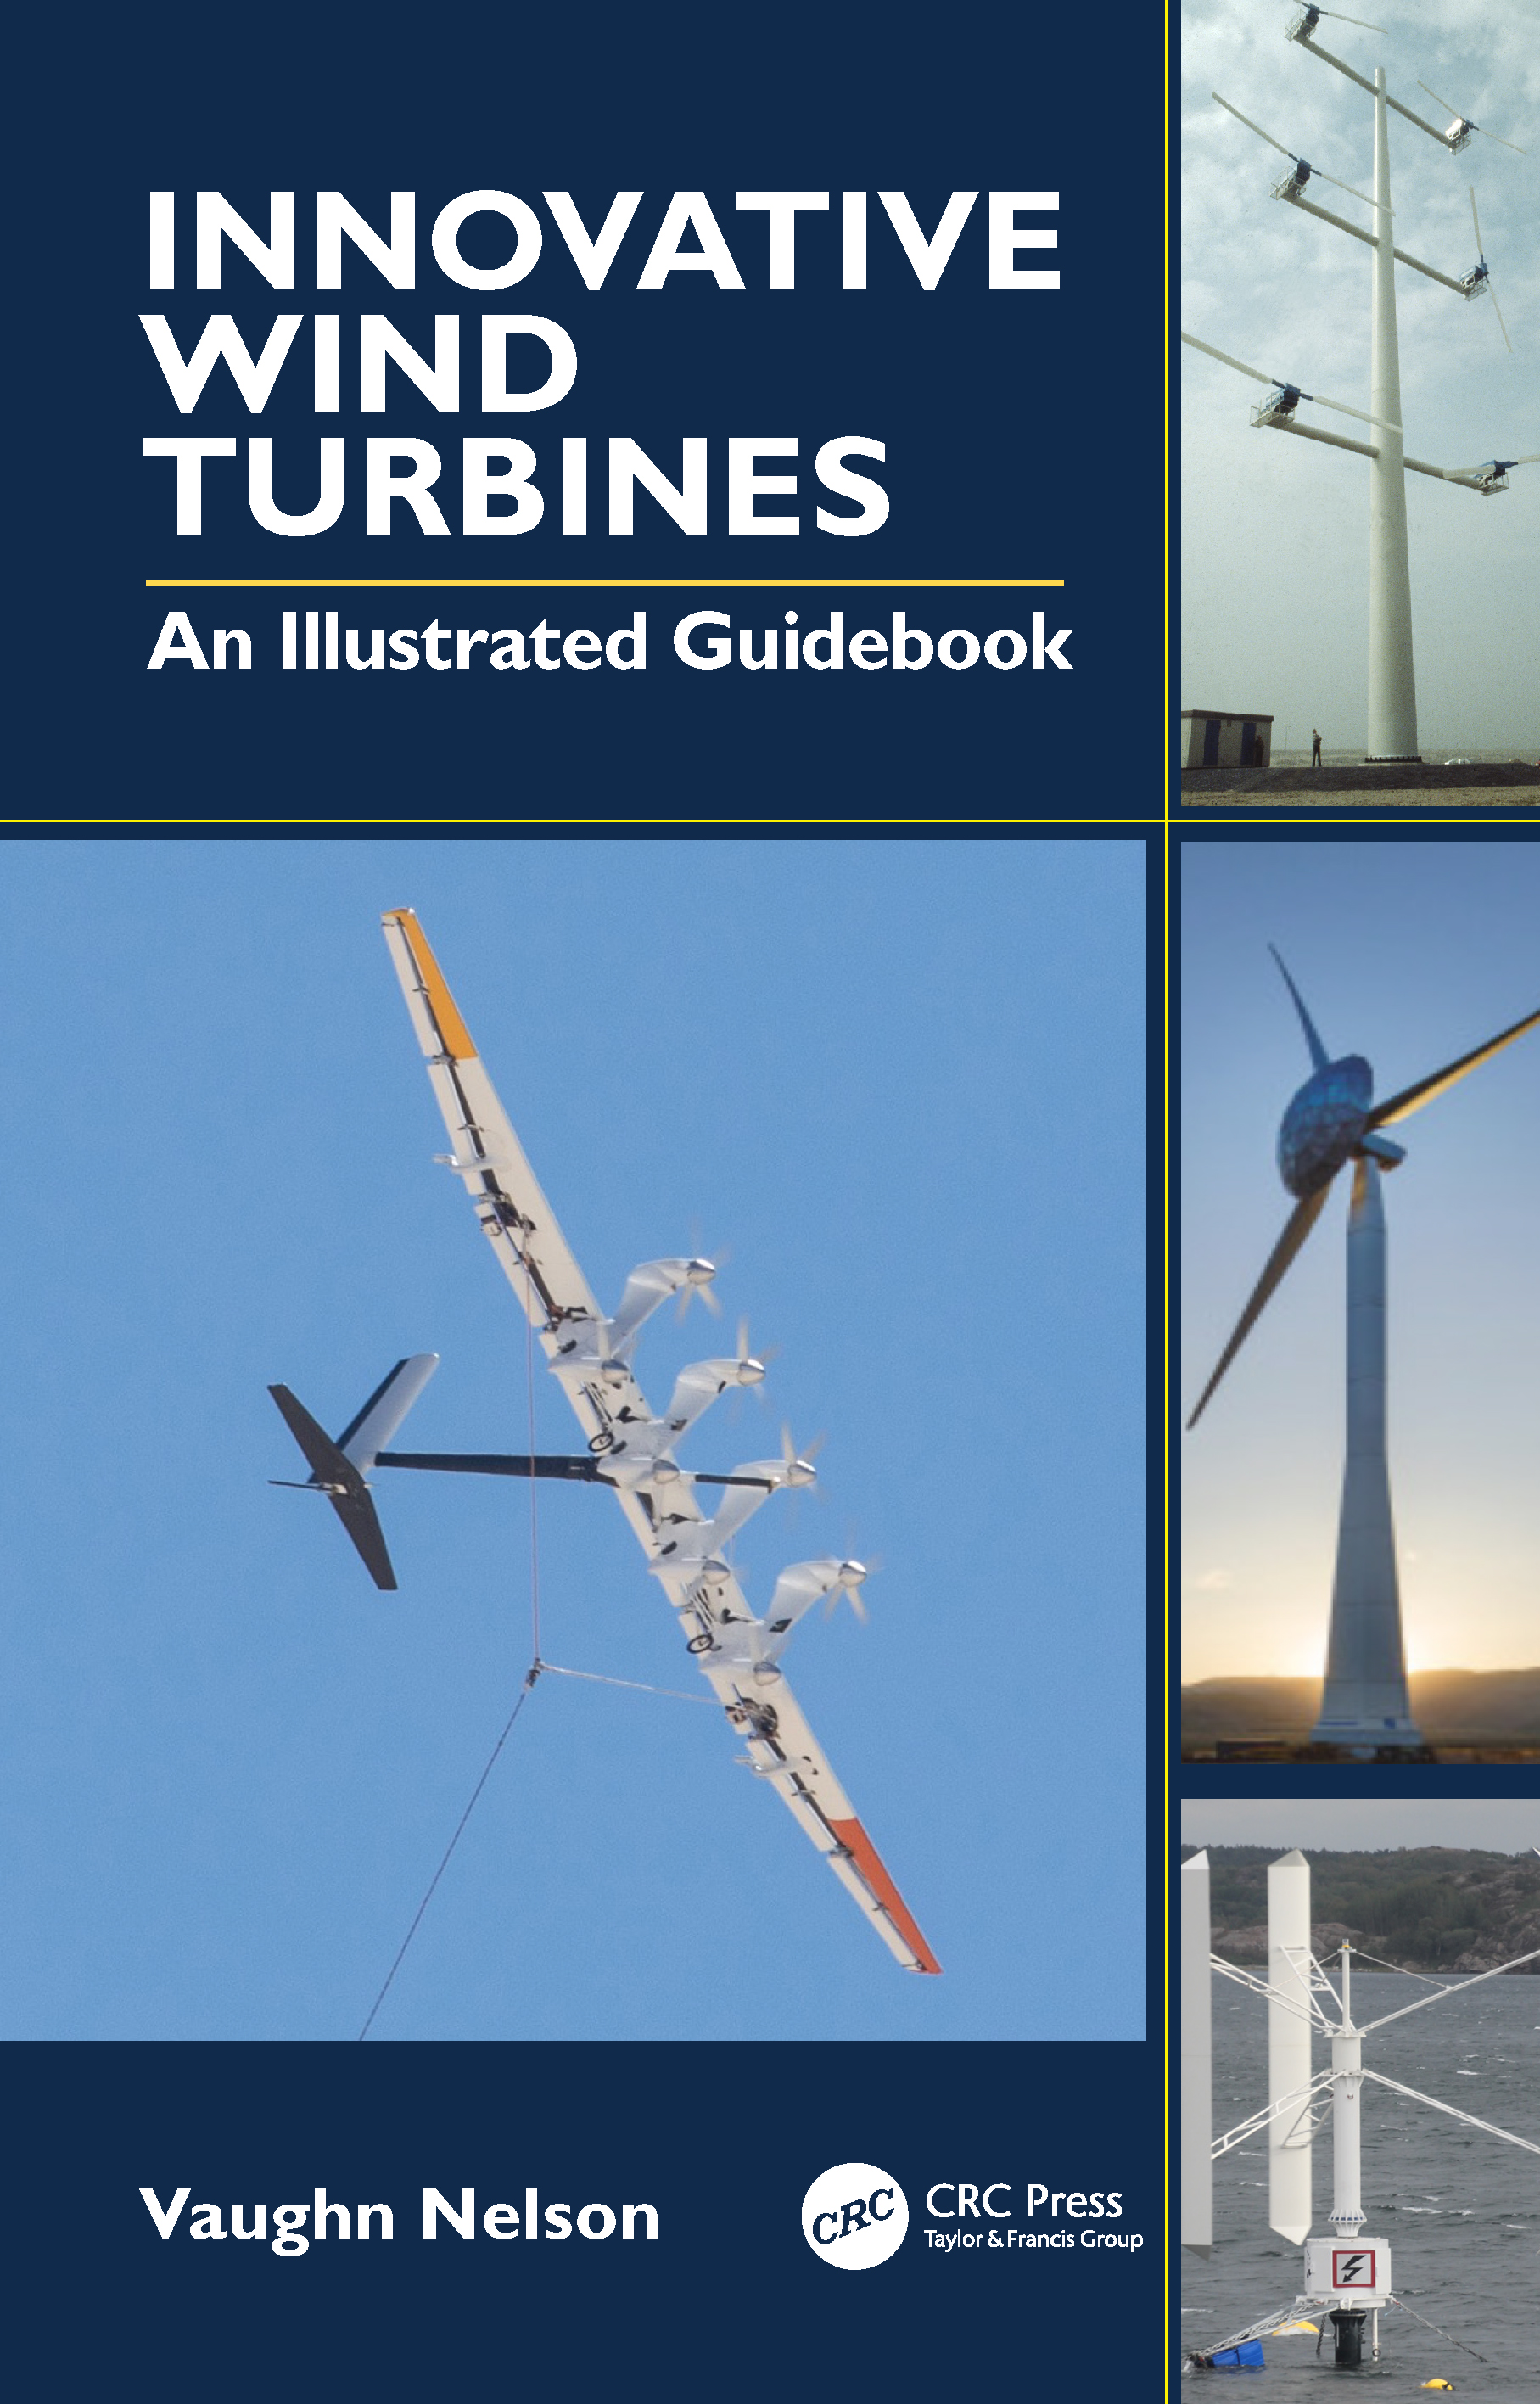 Innovative Wind Turbine: An Illustrated Guidebook book cover